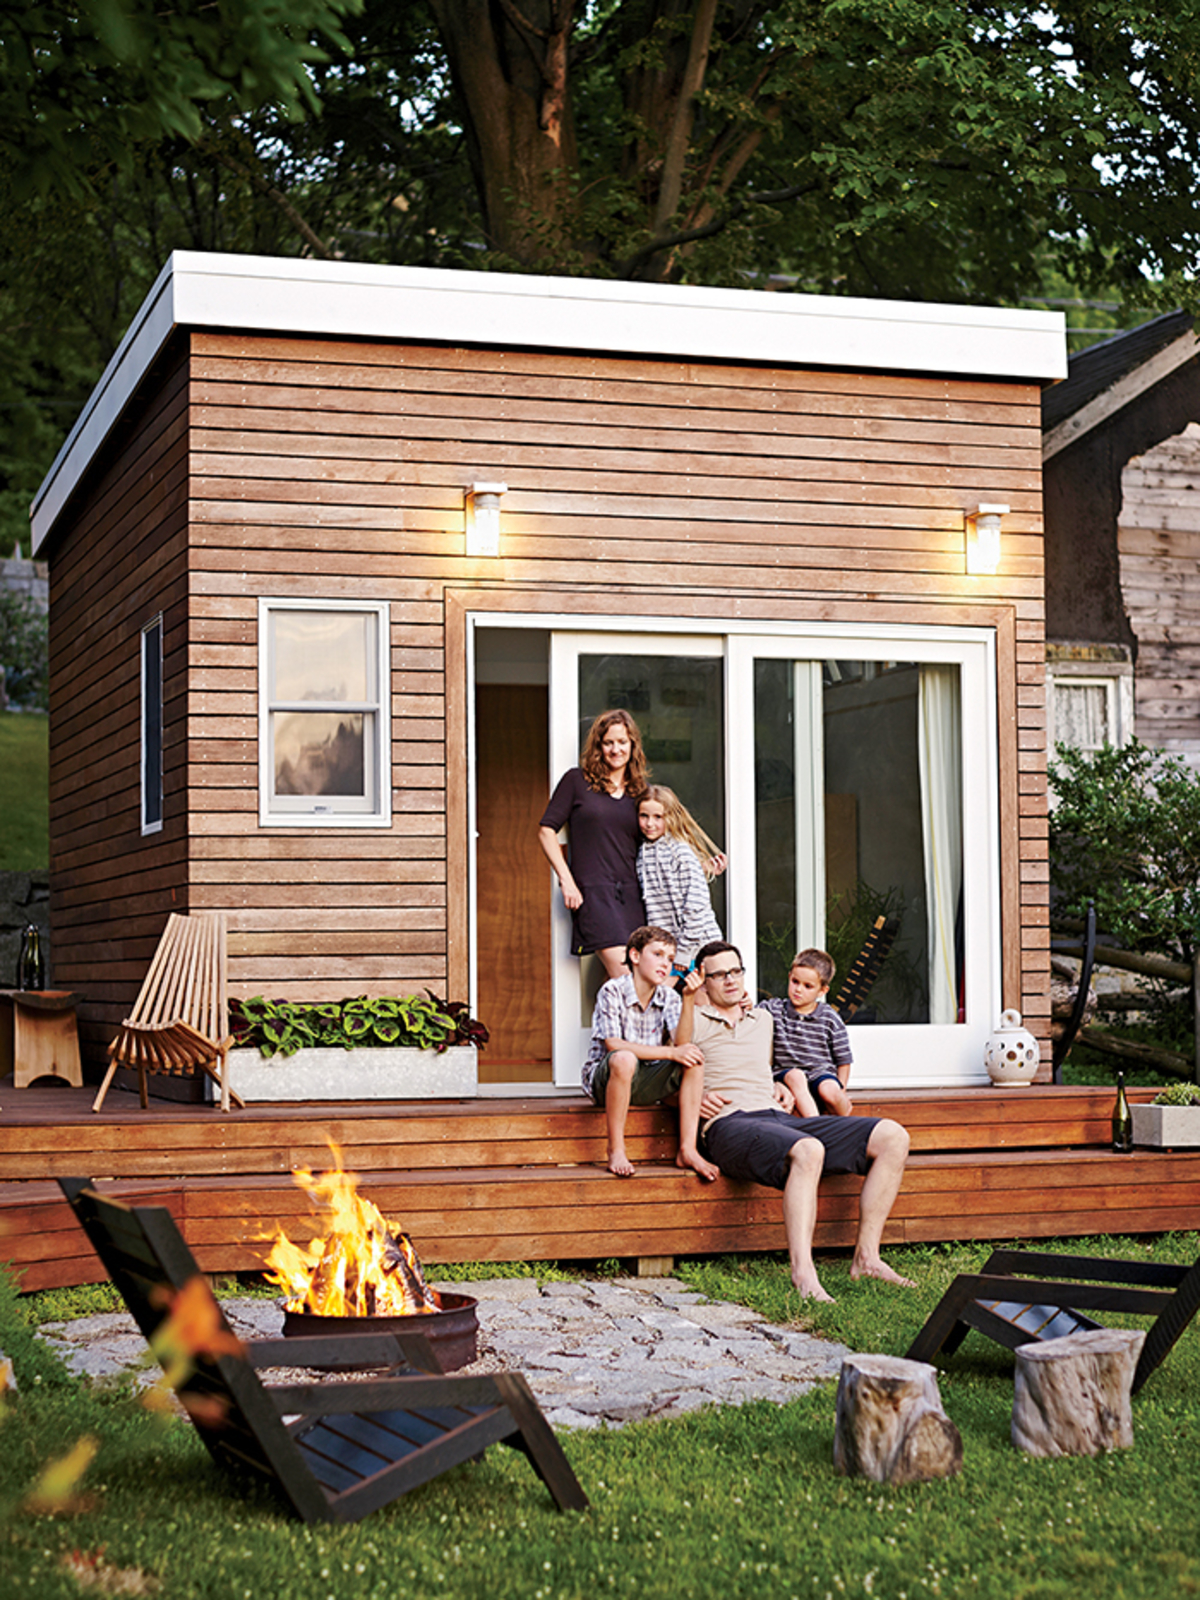 Tiny house town a diy 168 sq ft backyard studio Tiny house in backyard